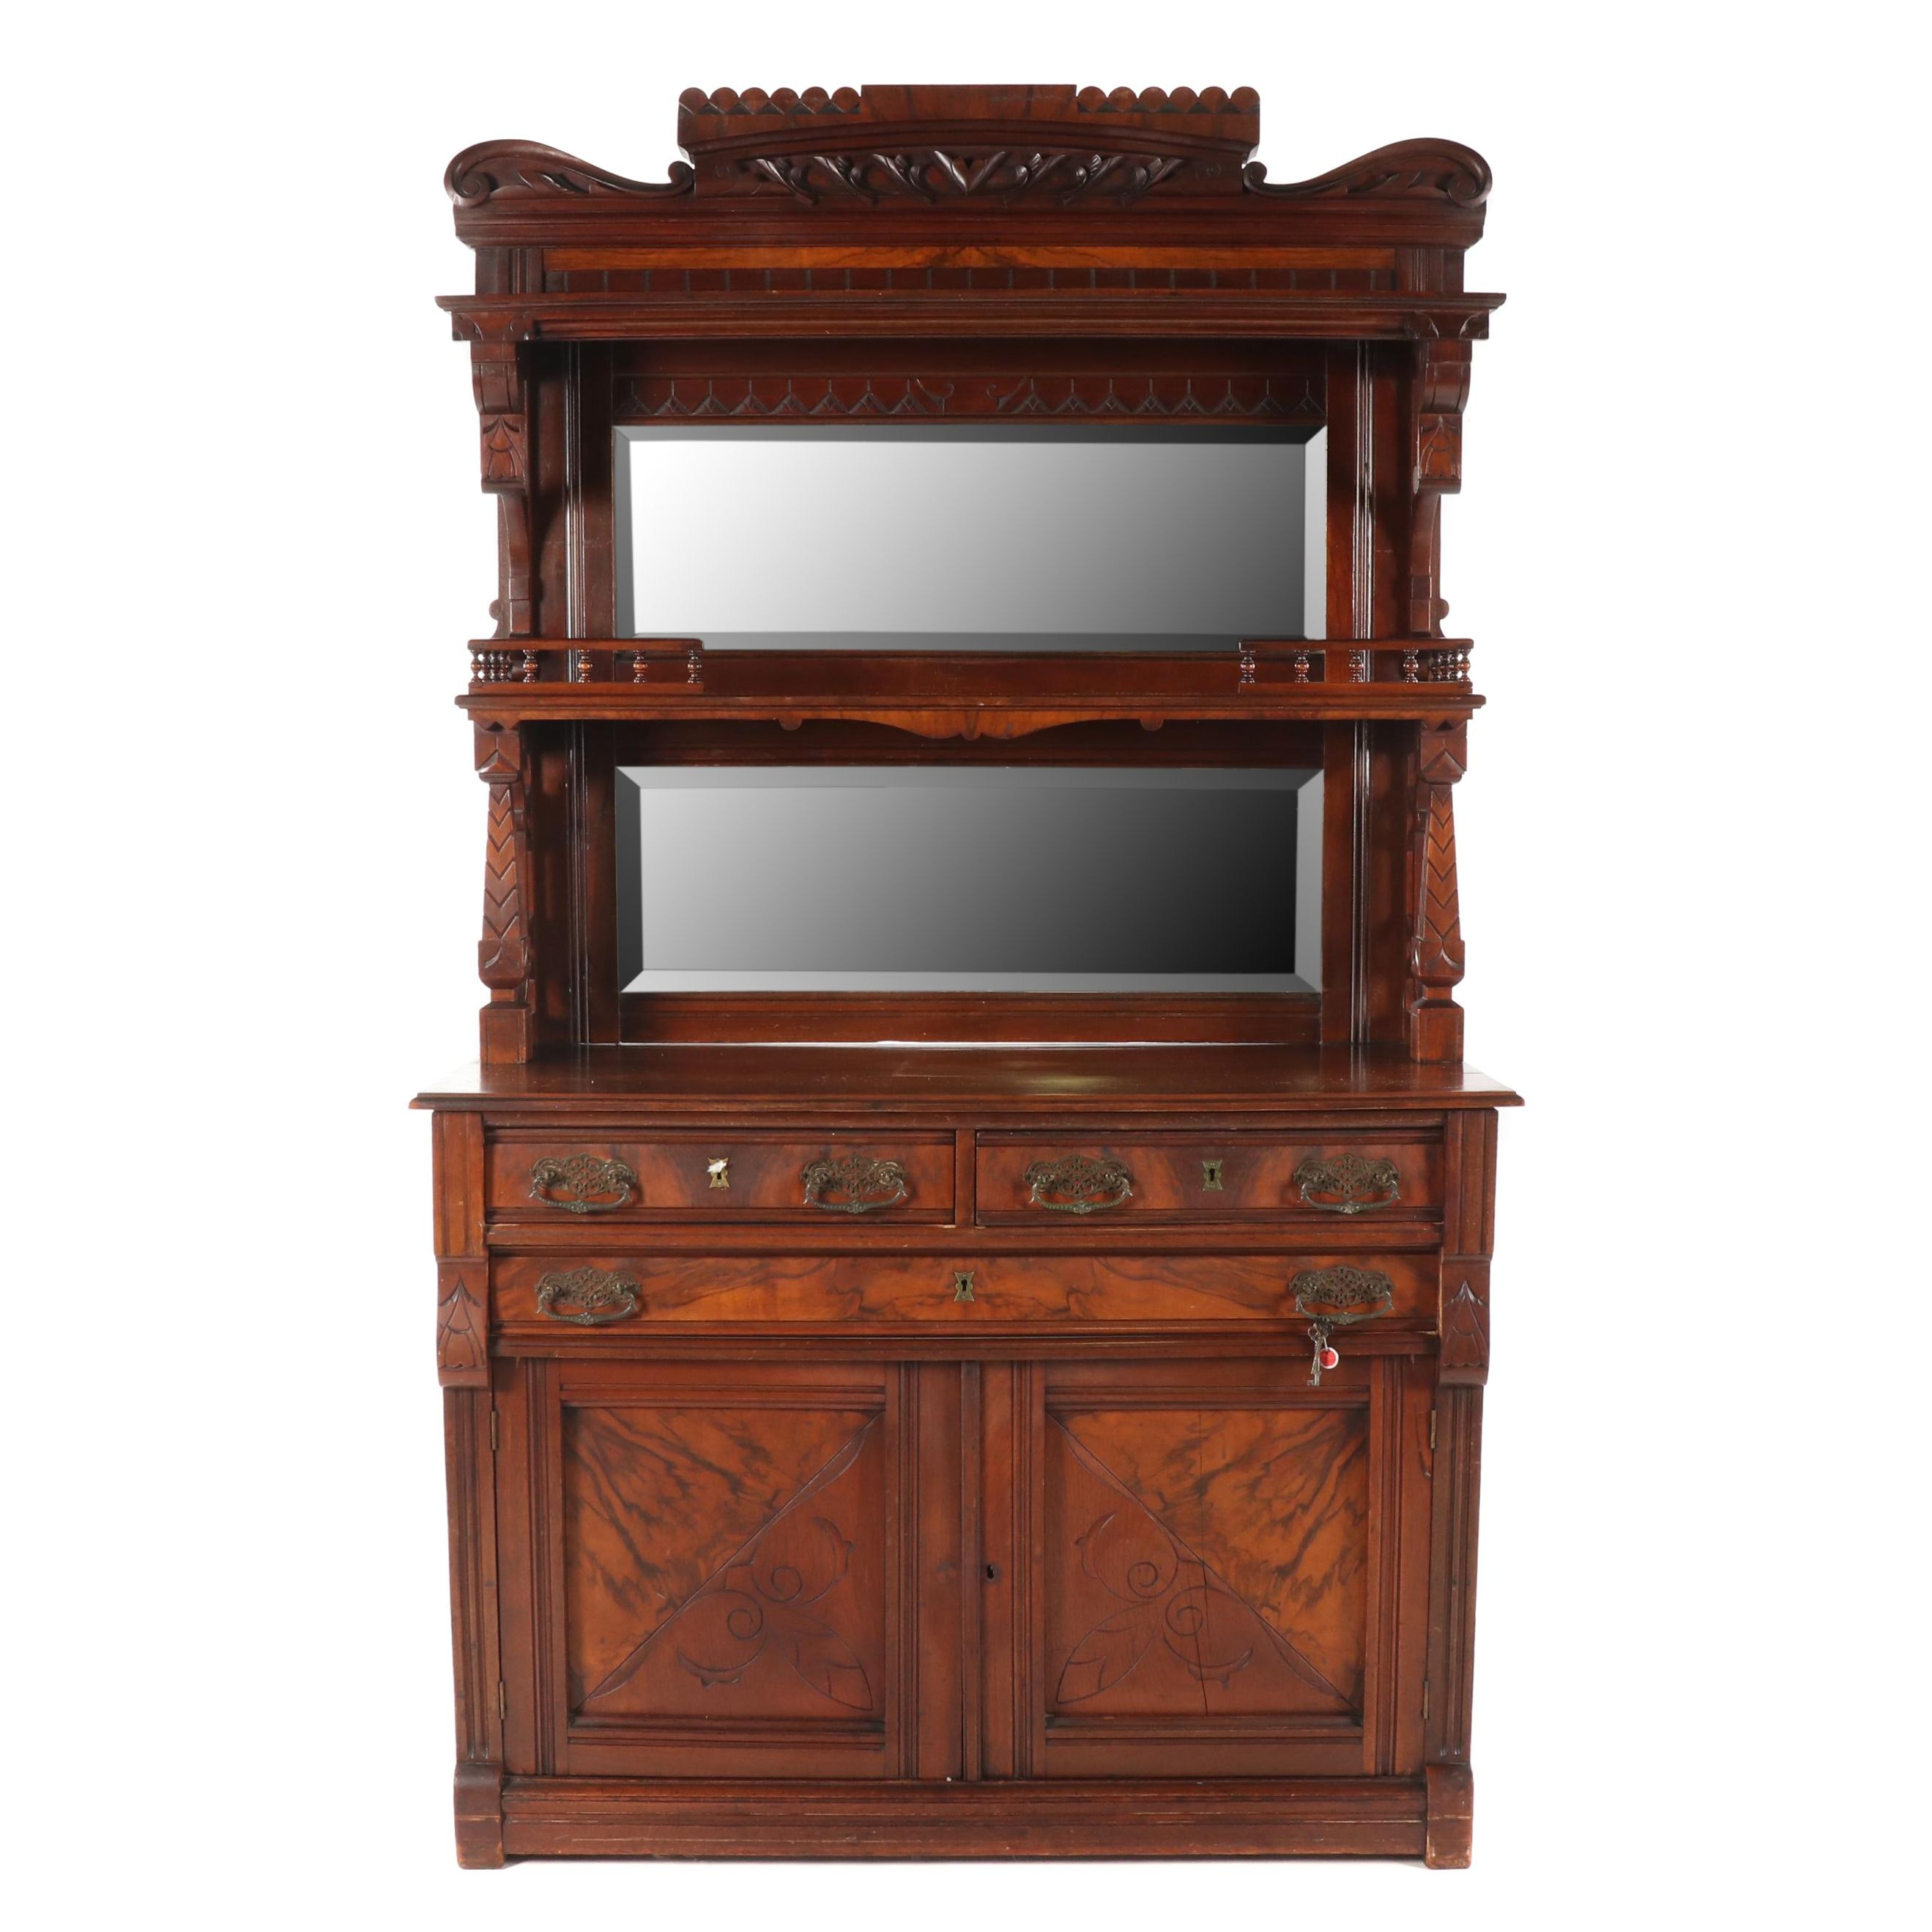 Eastlake Mahogany Sideboard with Mirrored Hutch, Late 19th Century